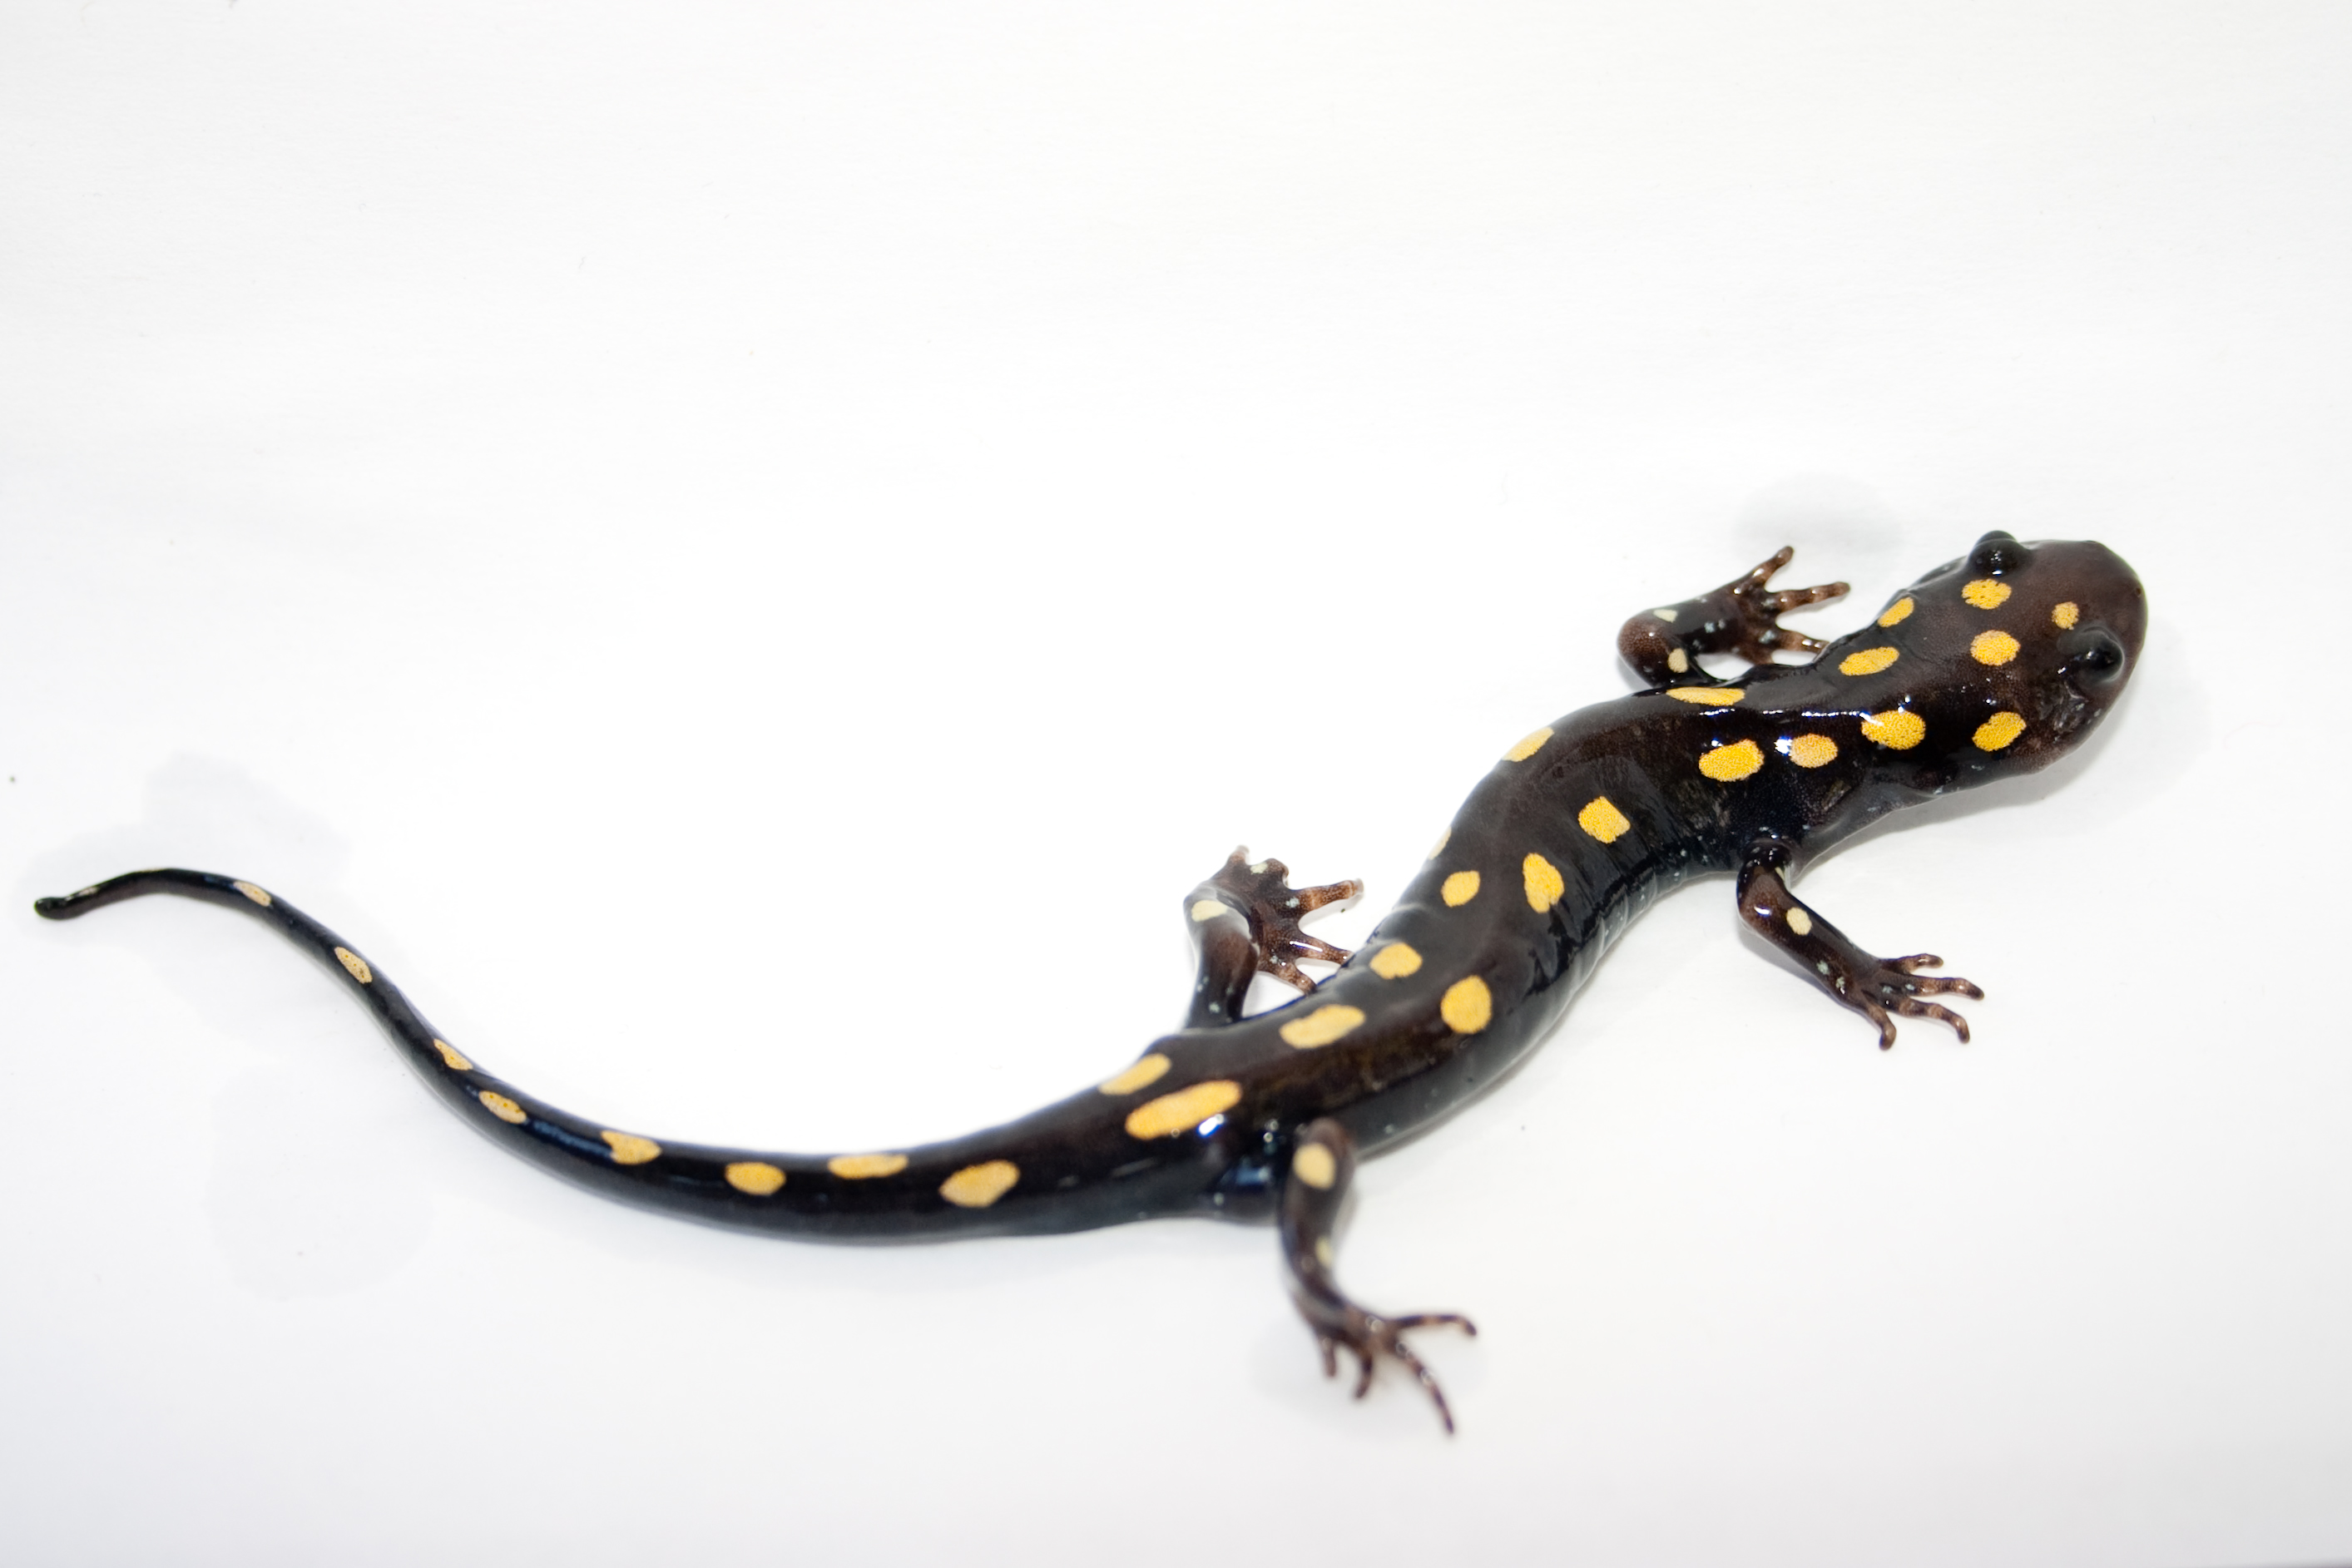 File:Spotted Salamander 3.jpg - Wikimedia Commons